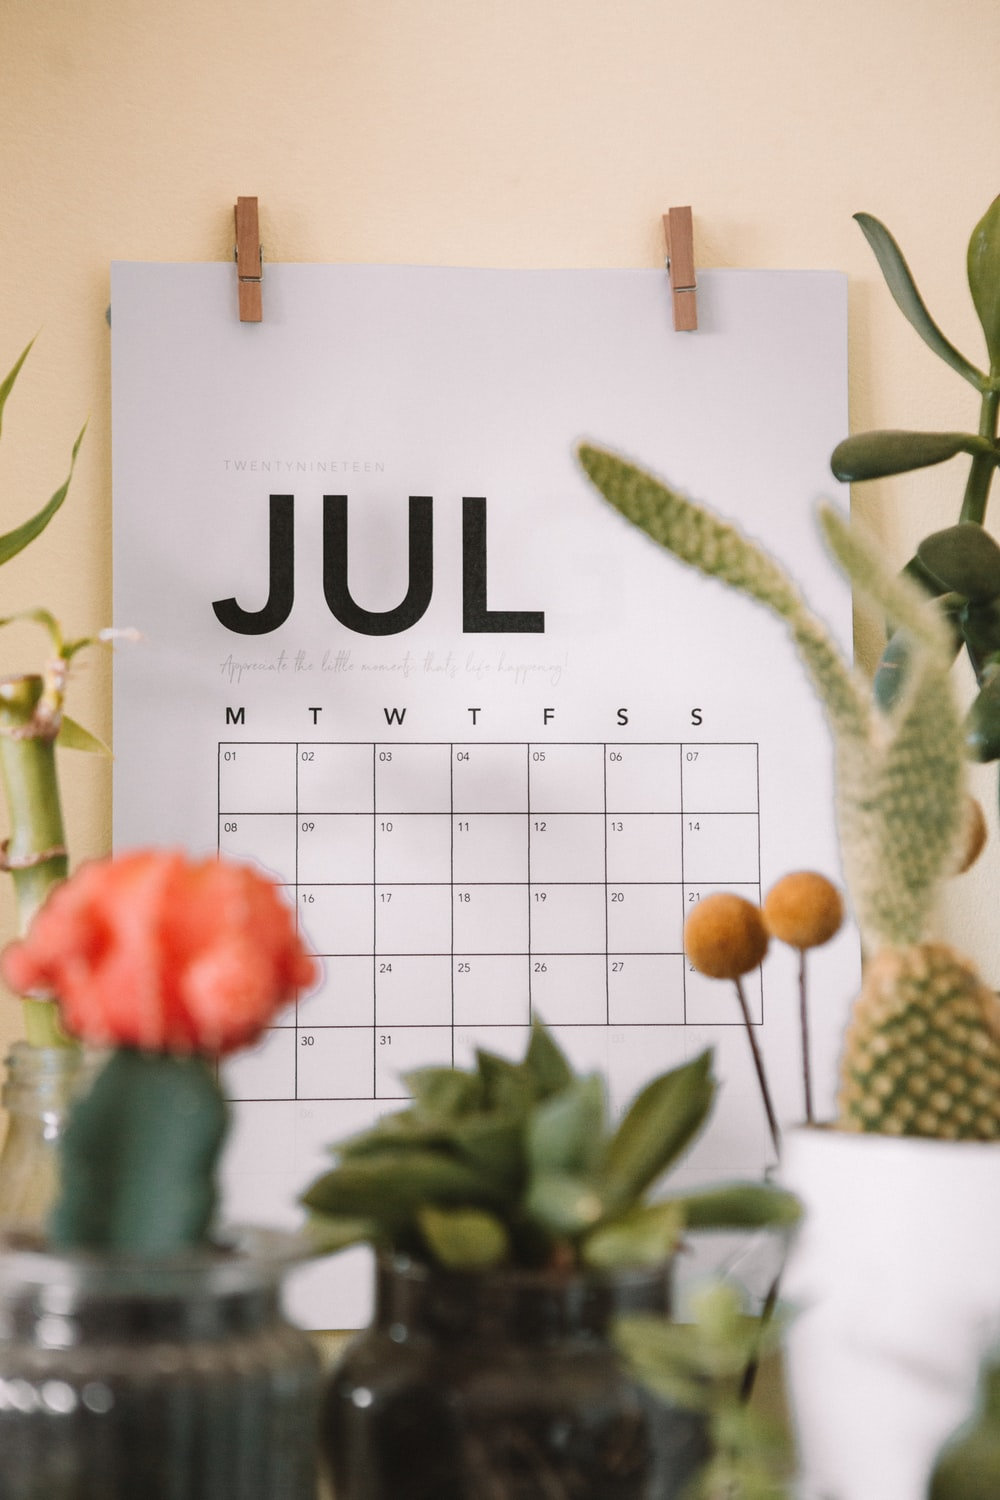 July calendar on focus photography